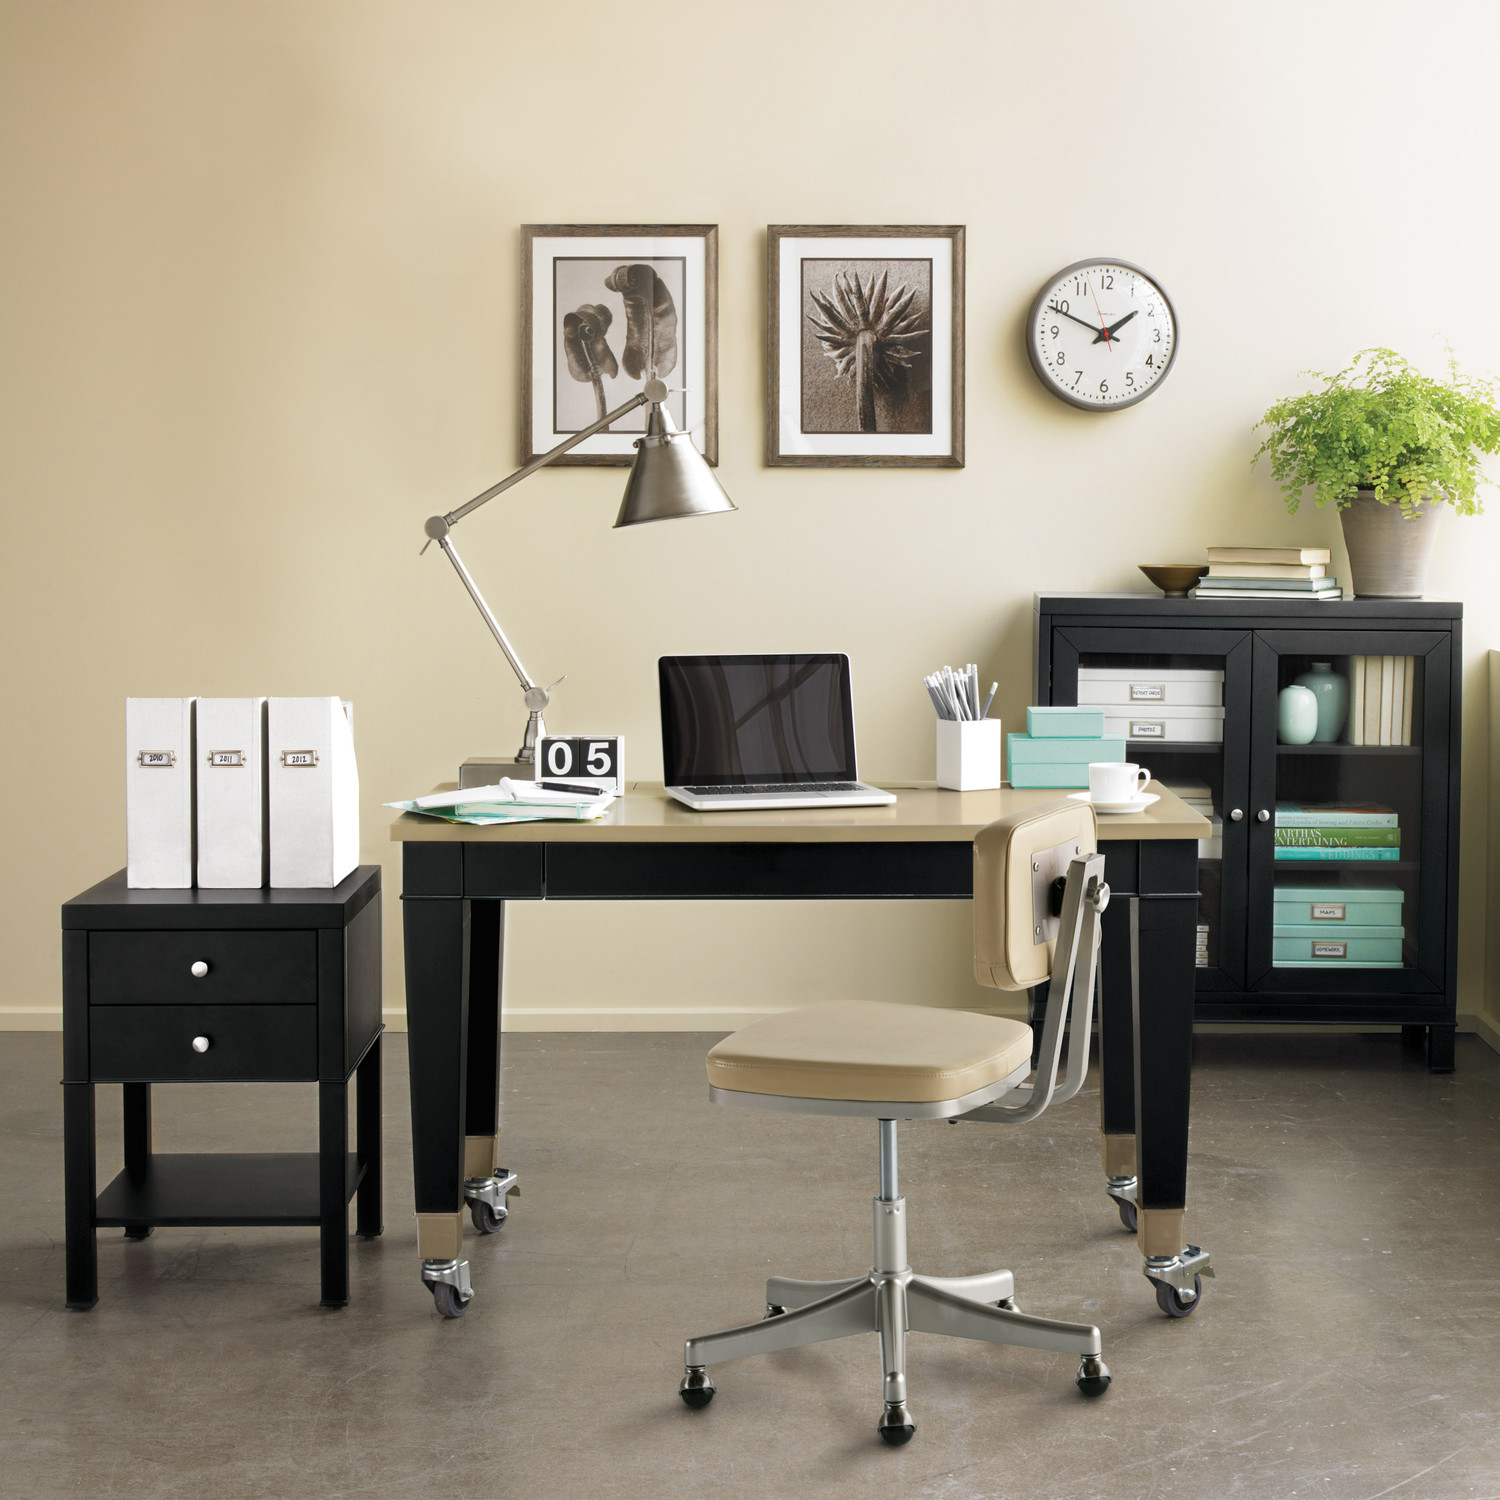 Martha stewart home office furniture martha stewart for Home office design 10x10